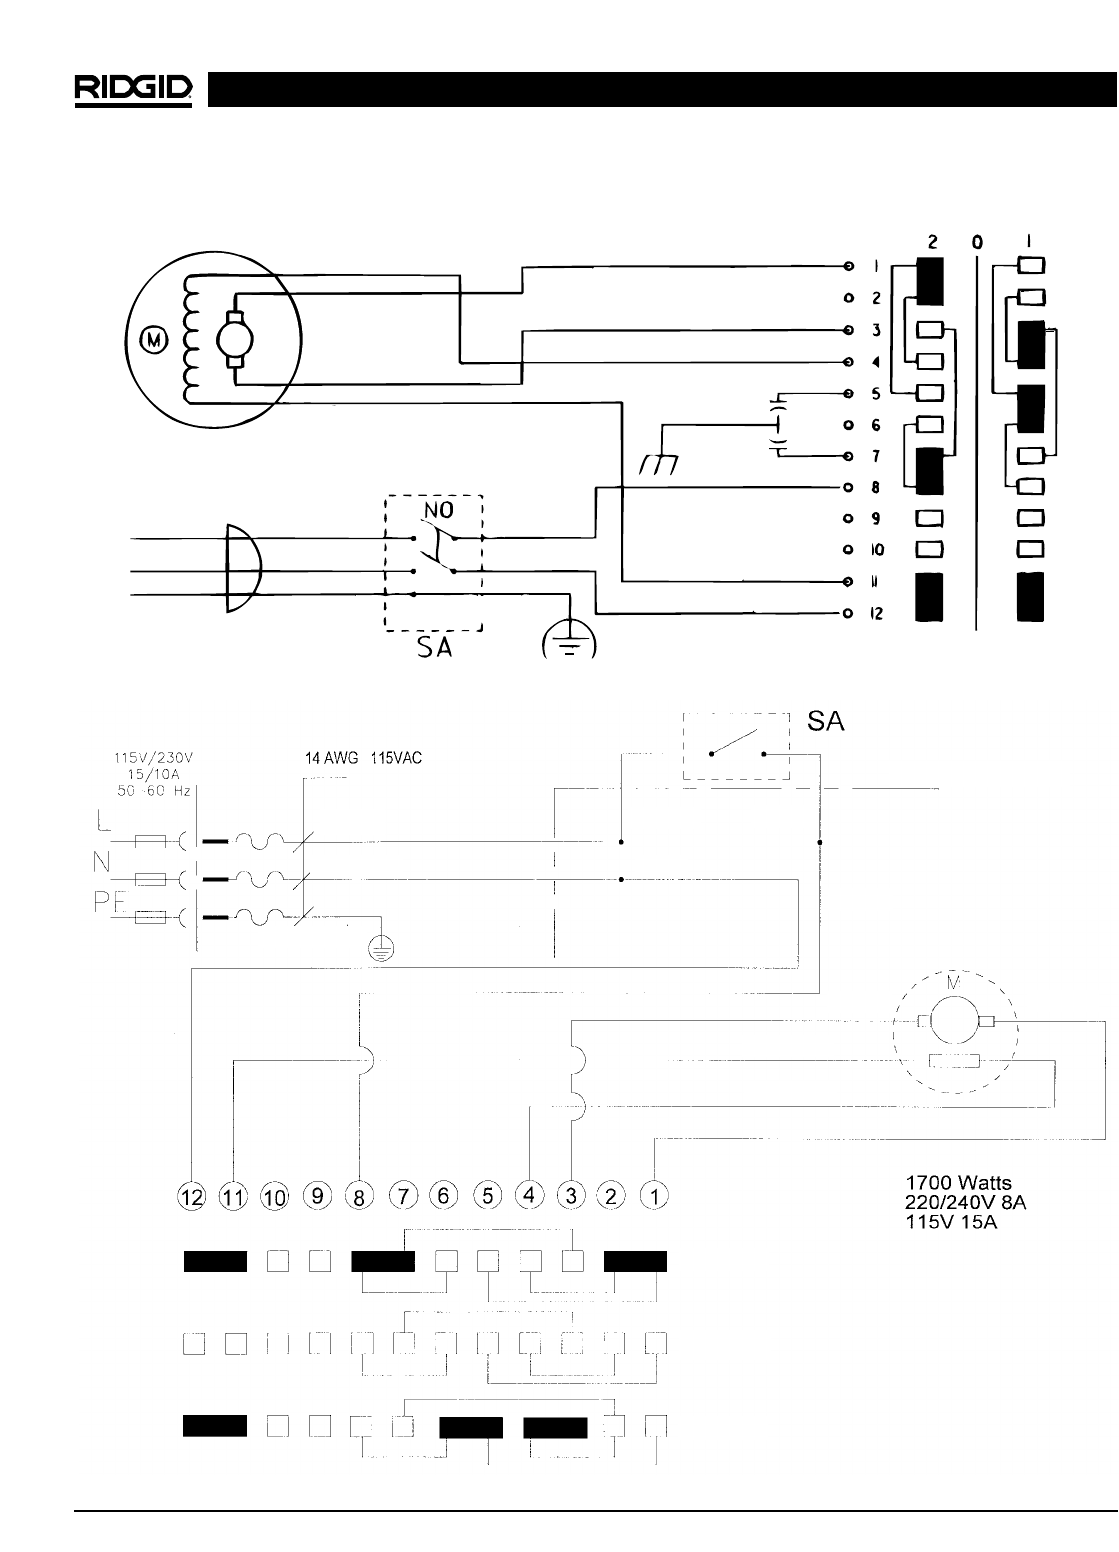 Wiring Diagram For Ridgid 300 Motoron Kawasaki Bayou Wiring Diagram